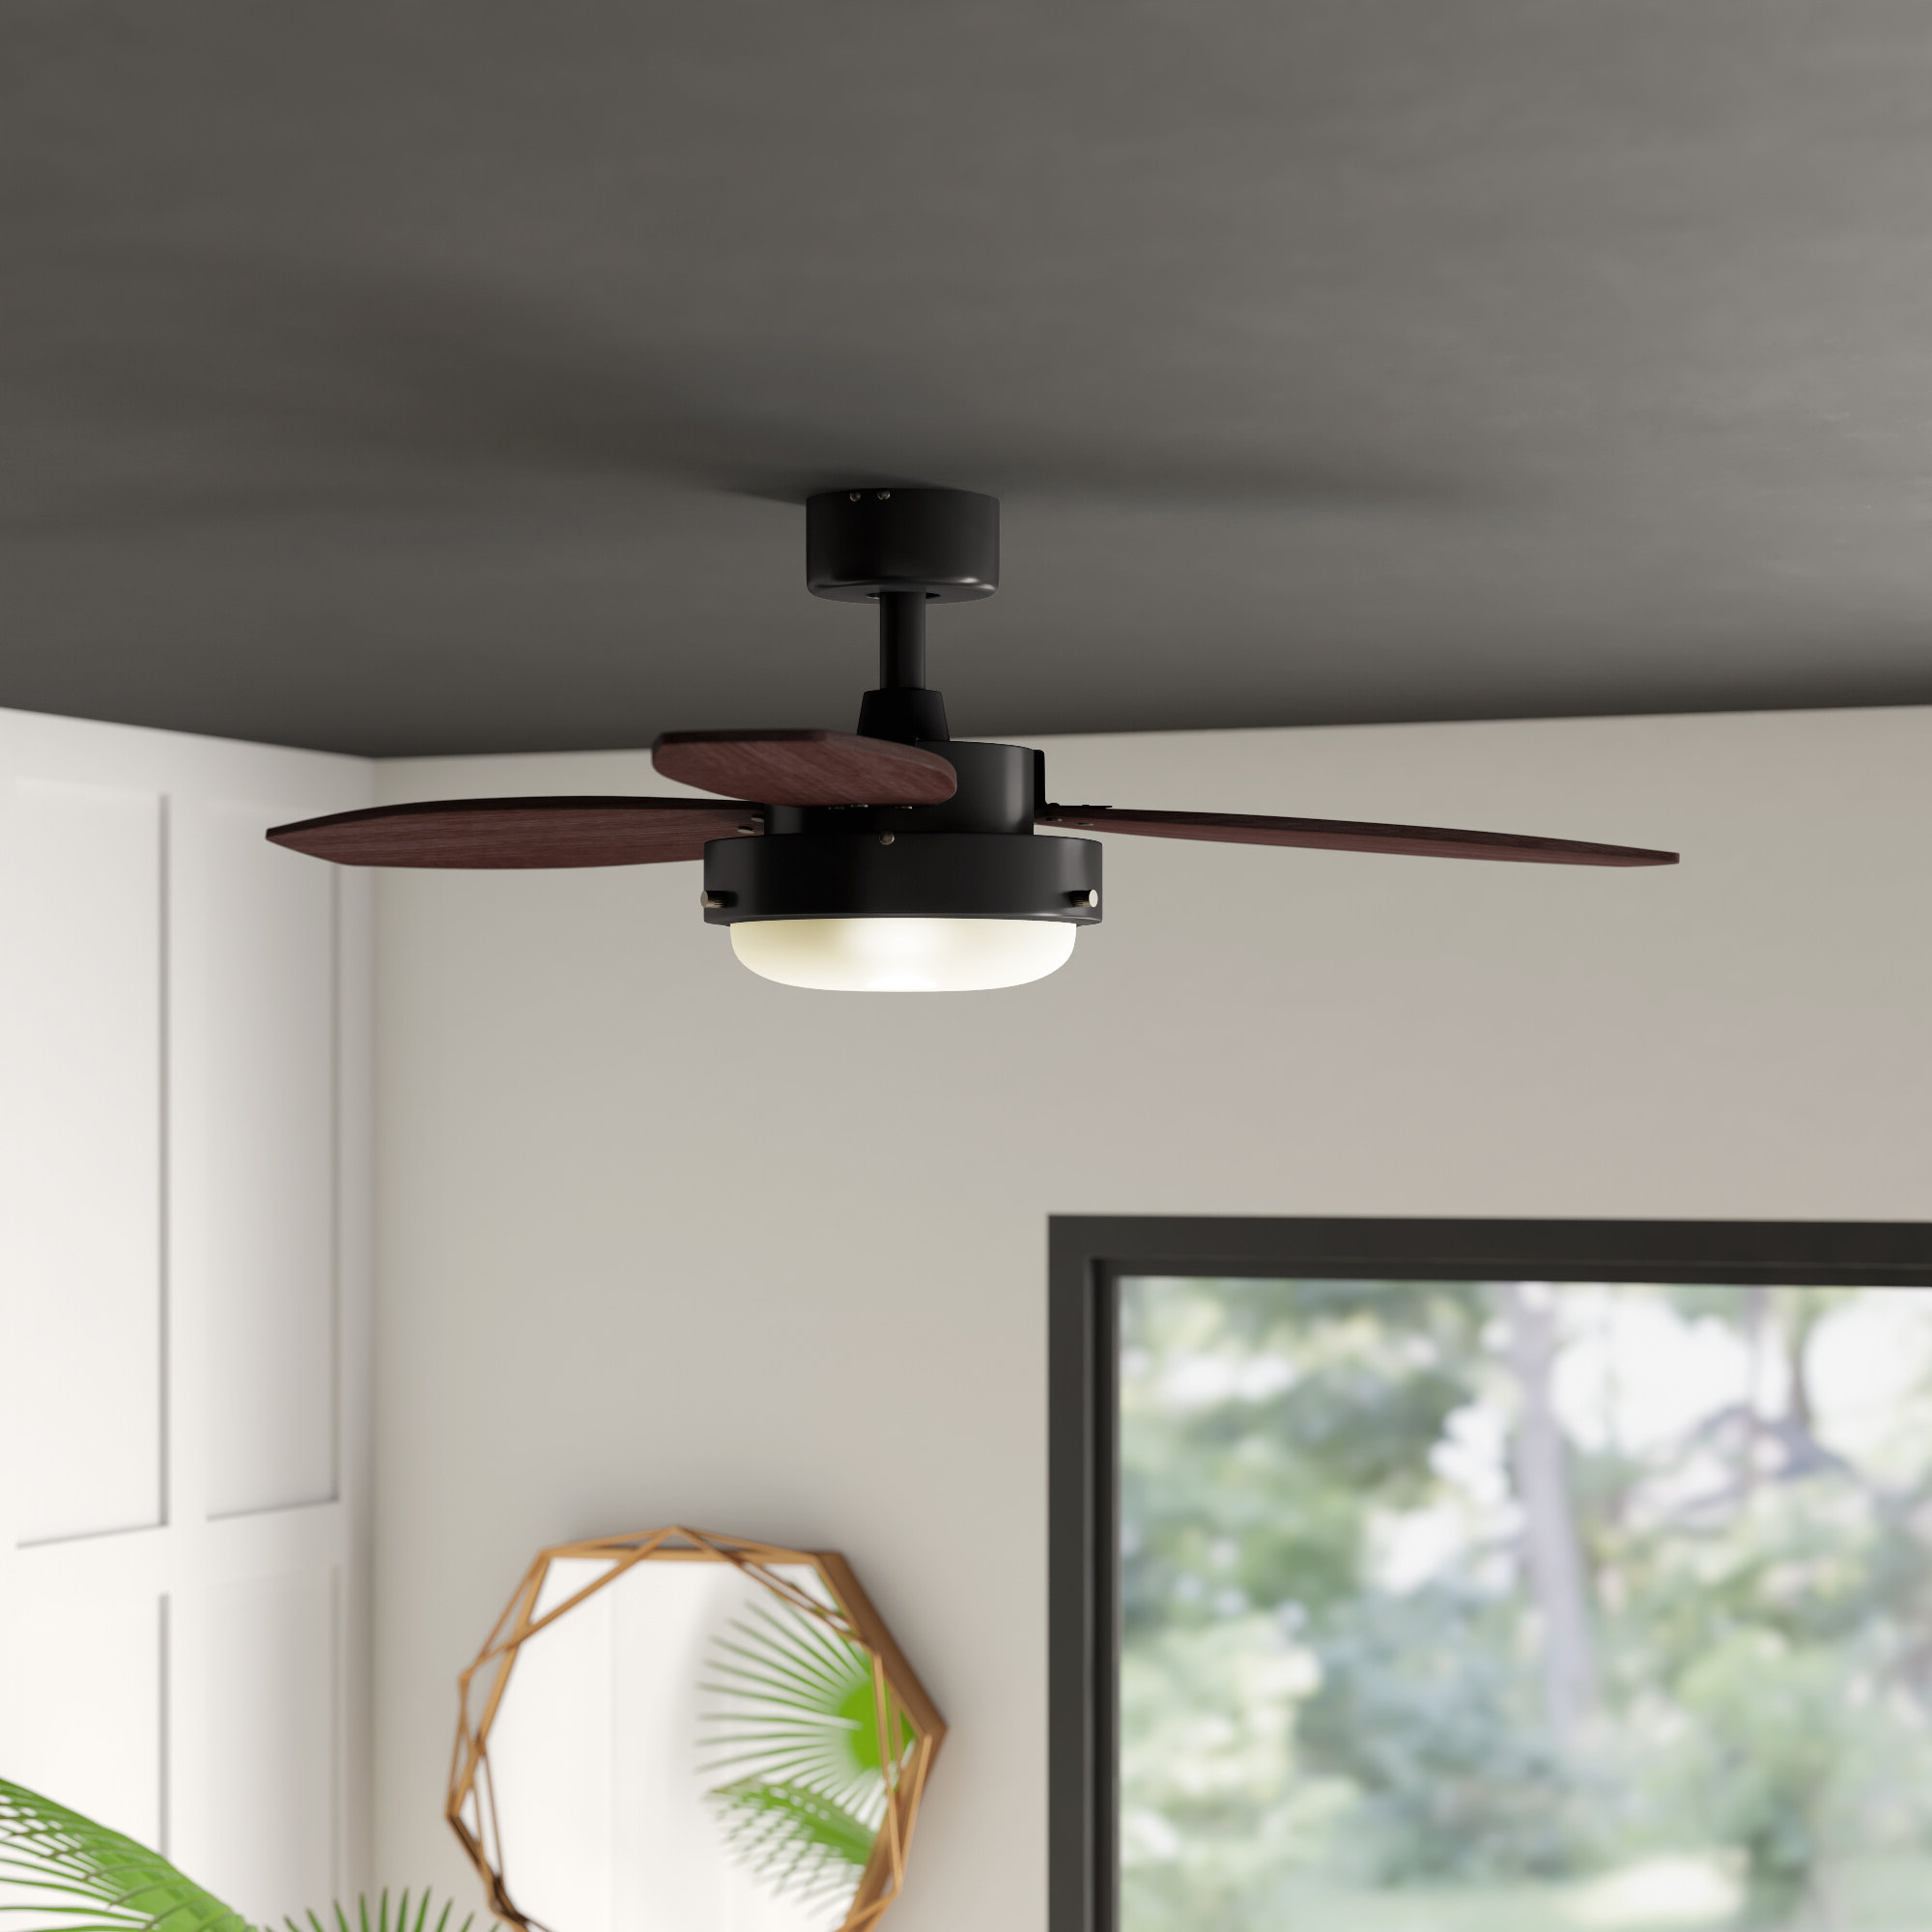 "Best And Newest Corsa 3 Blade Ceiling Fans Intended For 42"" Corsa 3 Blade Ceiling Fan, Light Kit Included (Gallery 1 of 20)"